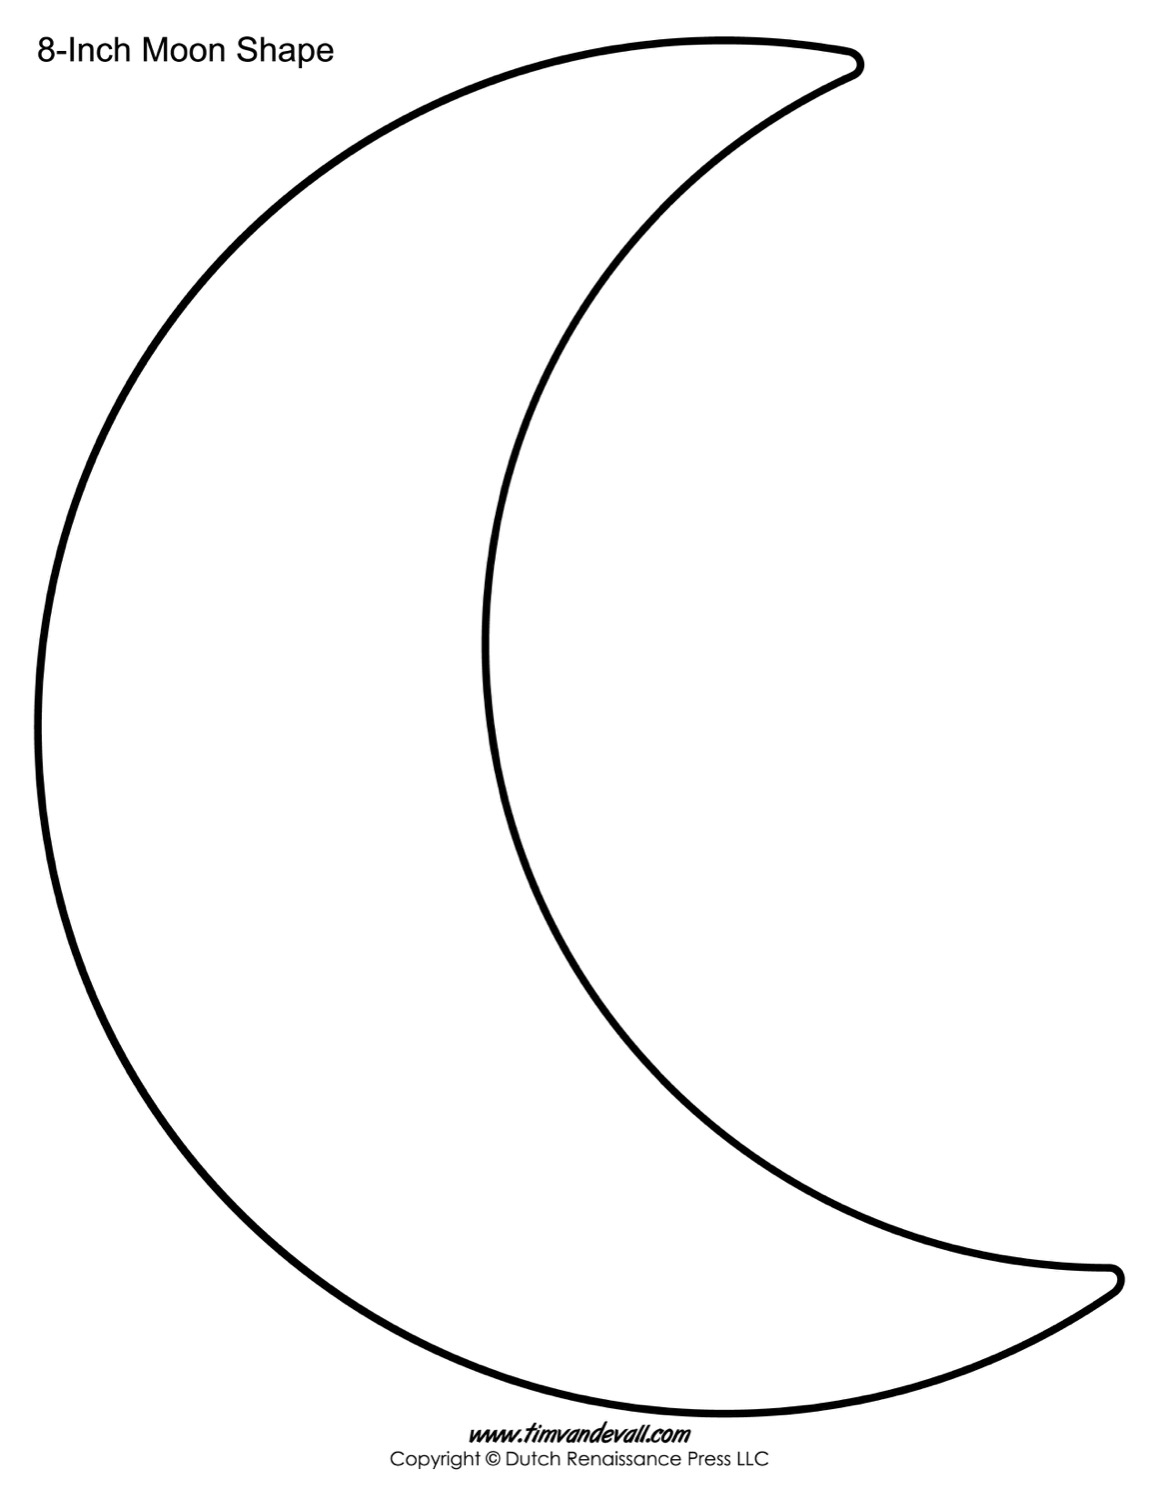 Moon template shape